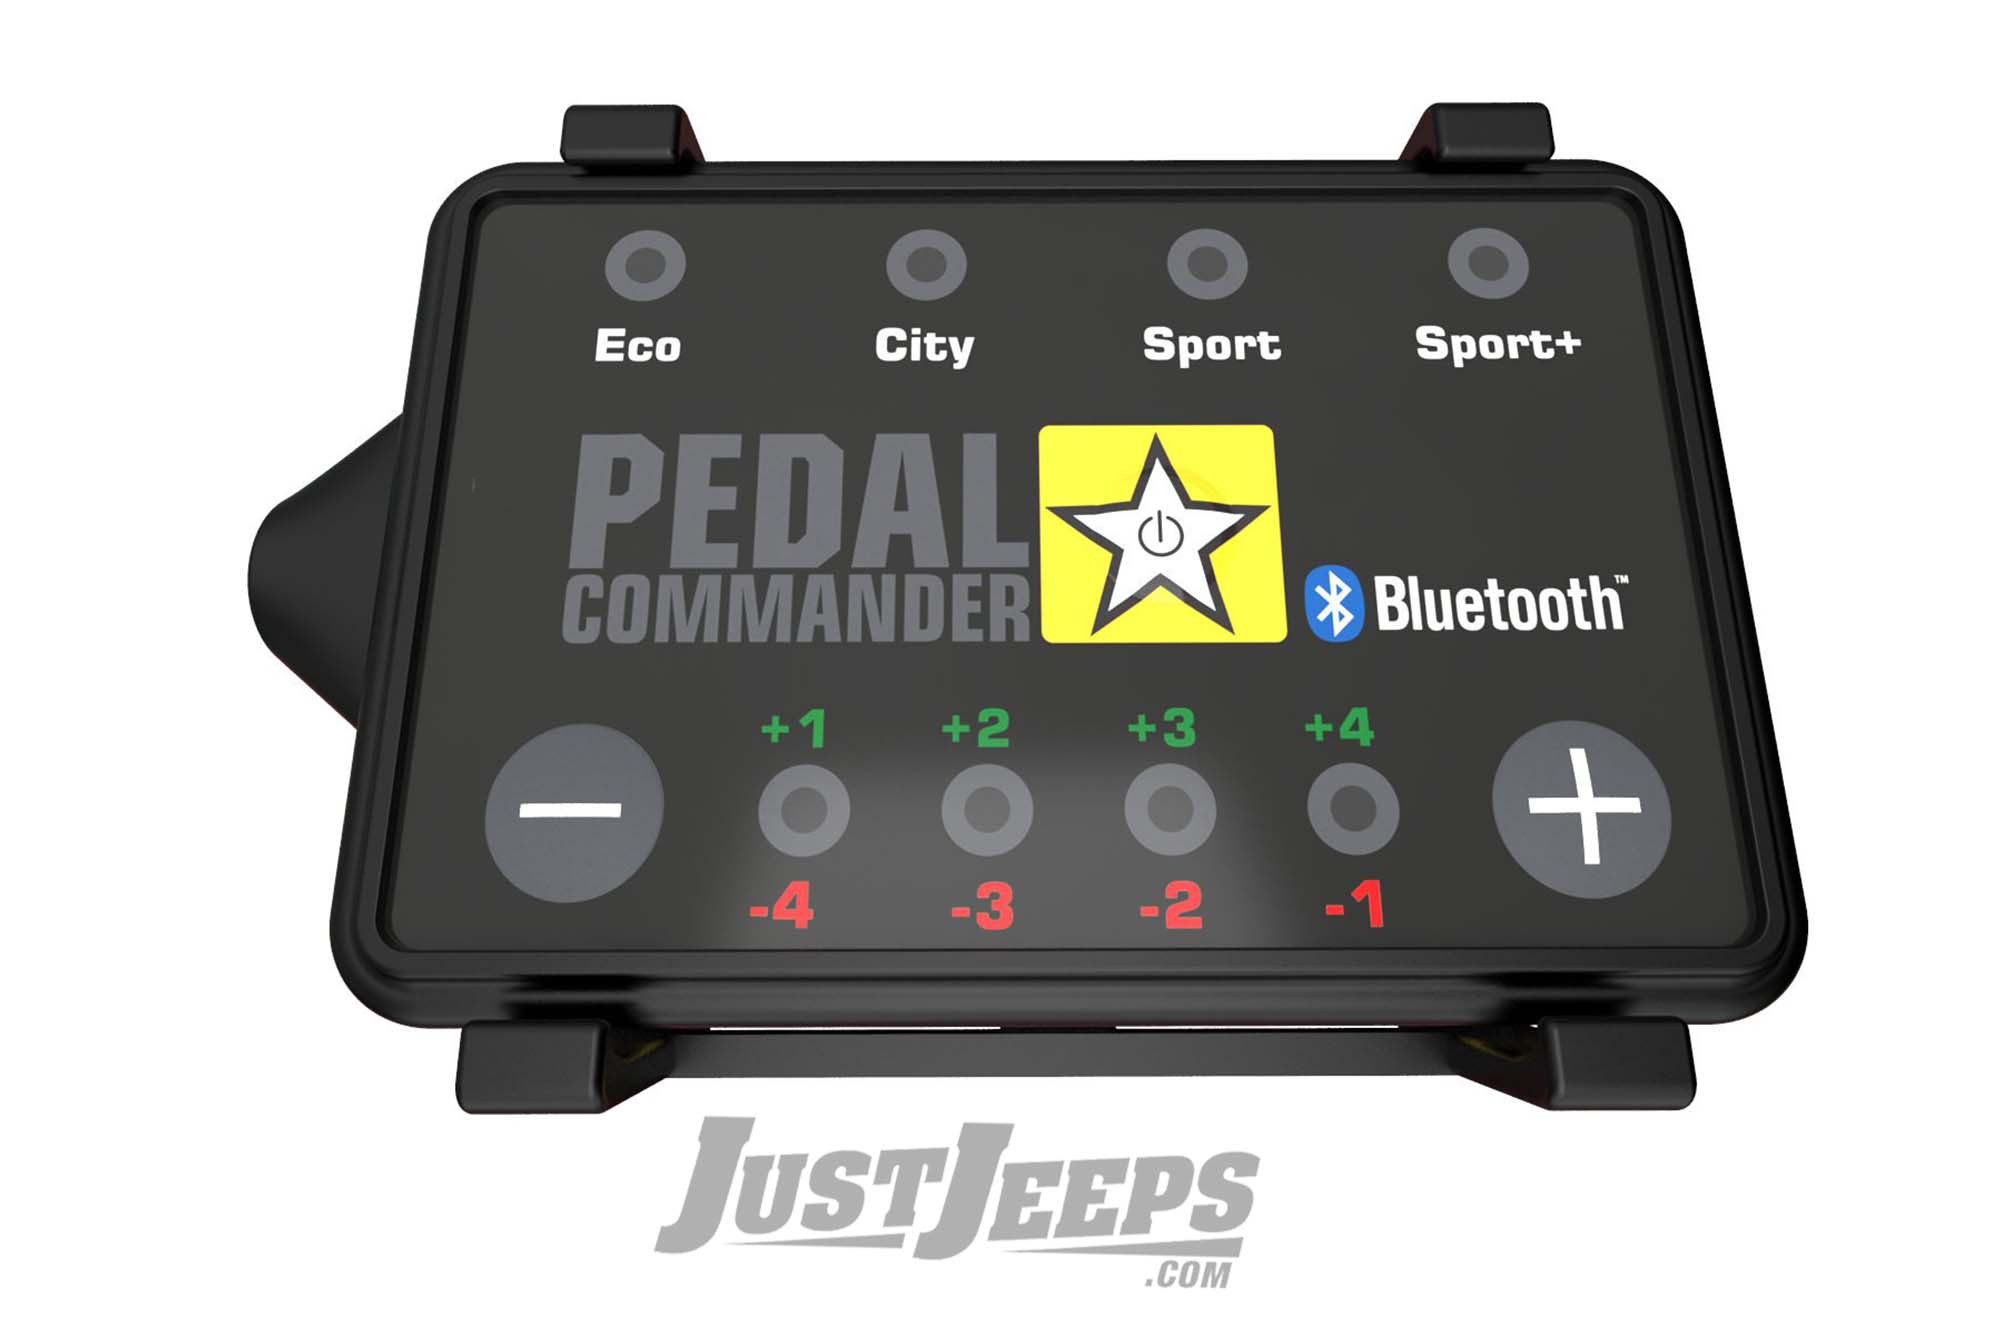 Pedal Commander Bluetooth Throttle Response Controller For 2007-18 Jeep Wrangler JK, 2007-18 Grand Cherokee, 2007-10 Commander, & 2008-12 Liberty Models PC31-BT